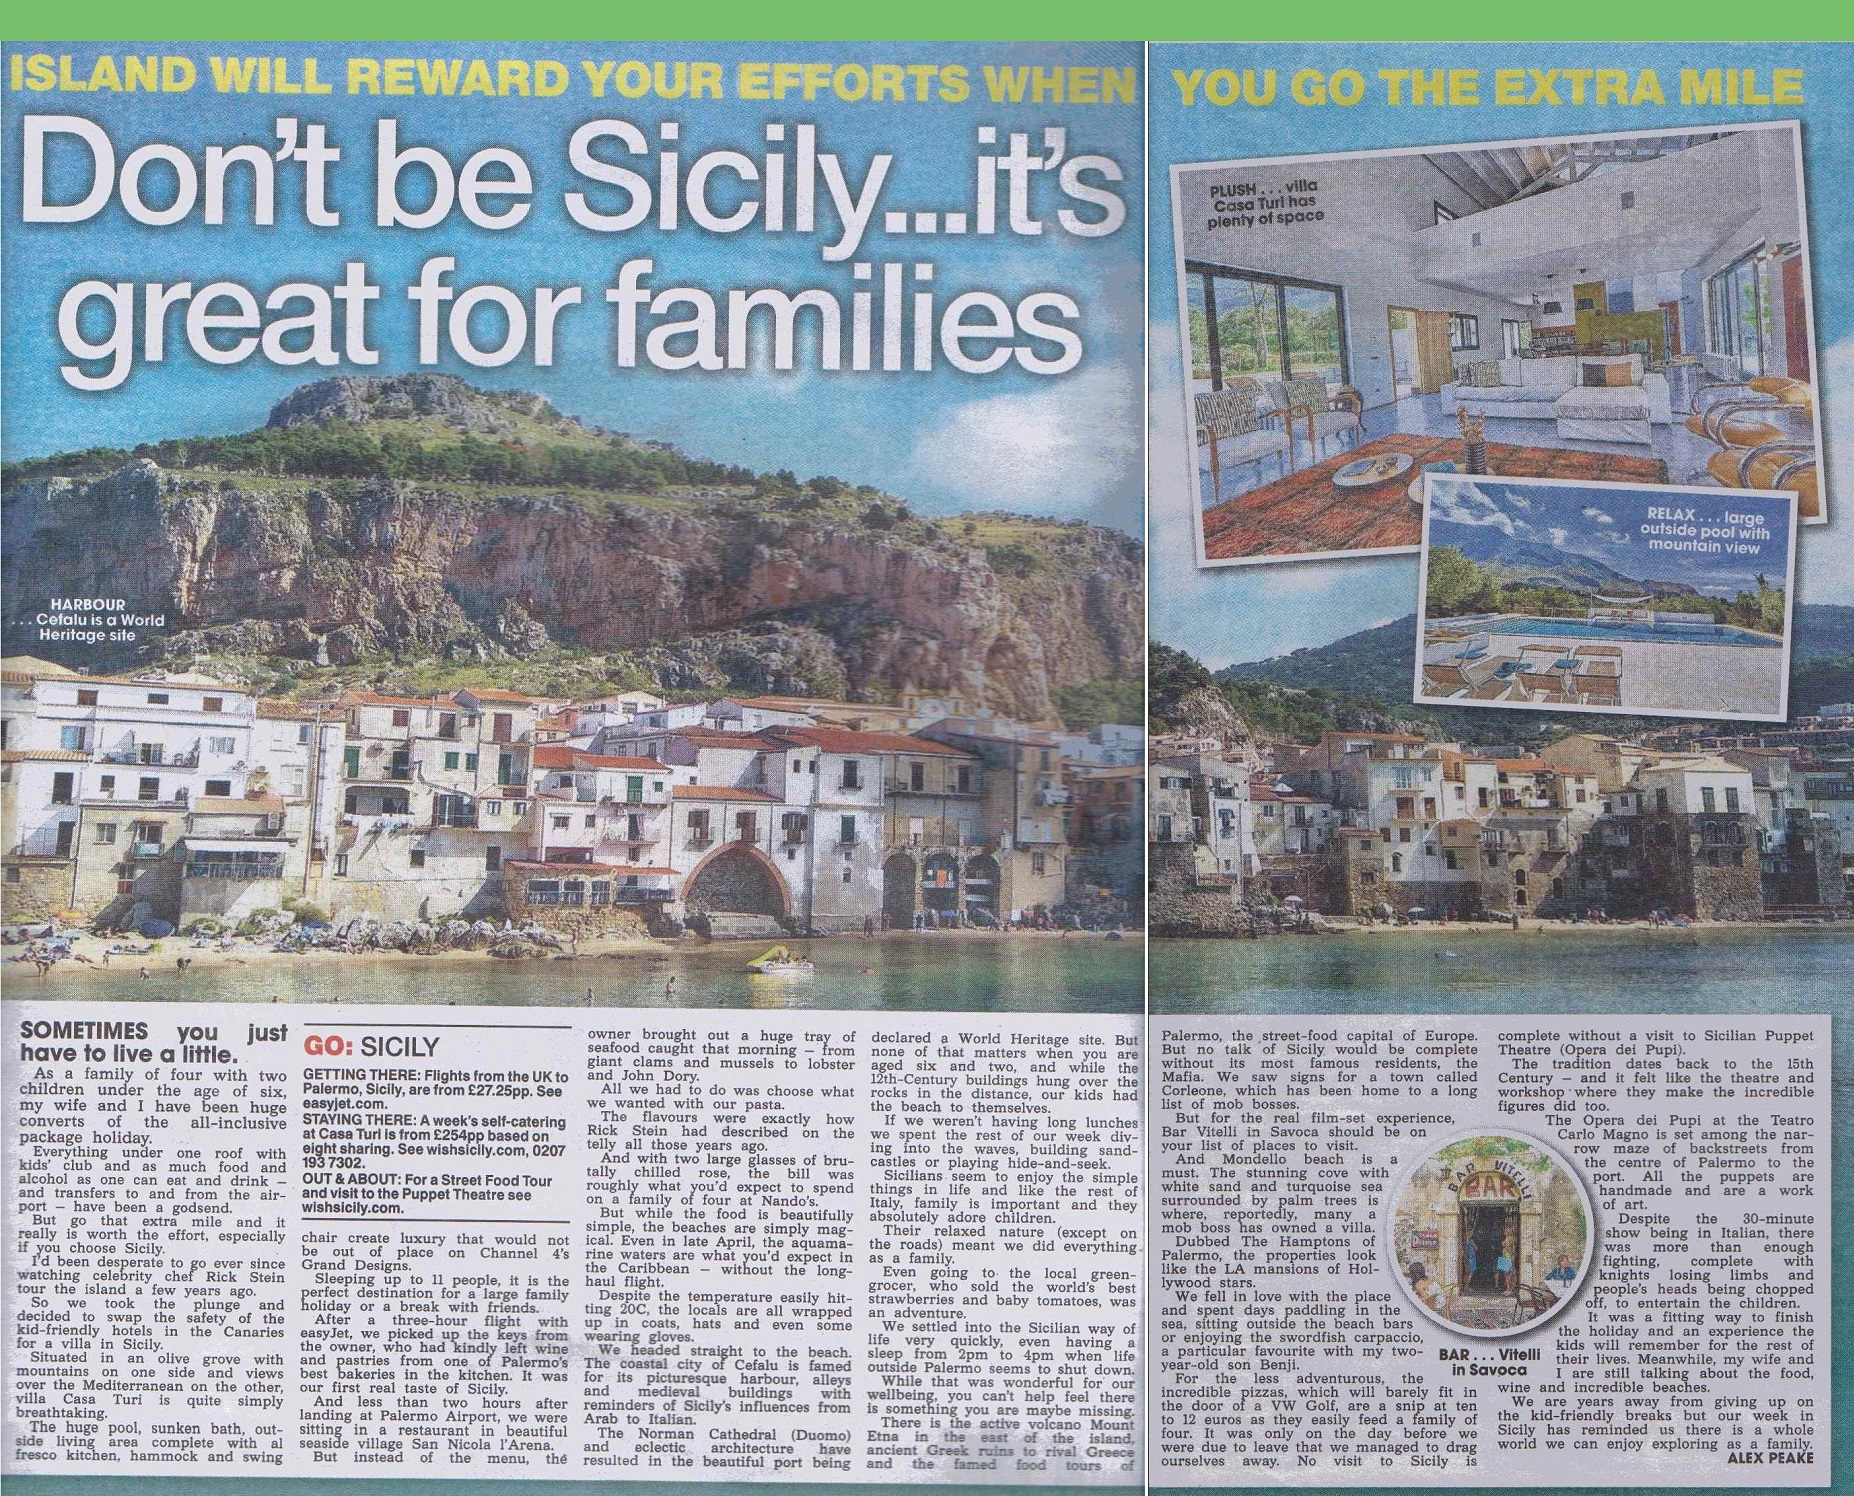 https://www.thesun.co.uk/travel/9154770/sicily-travel-great-for-families/